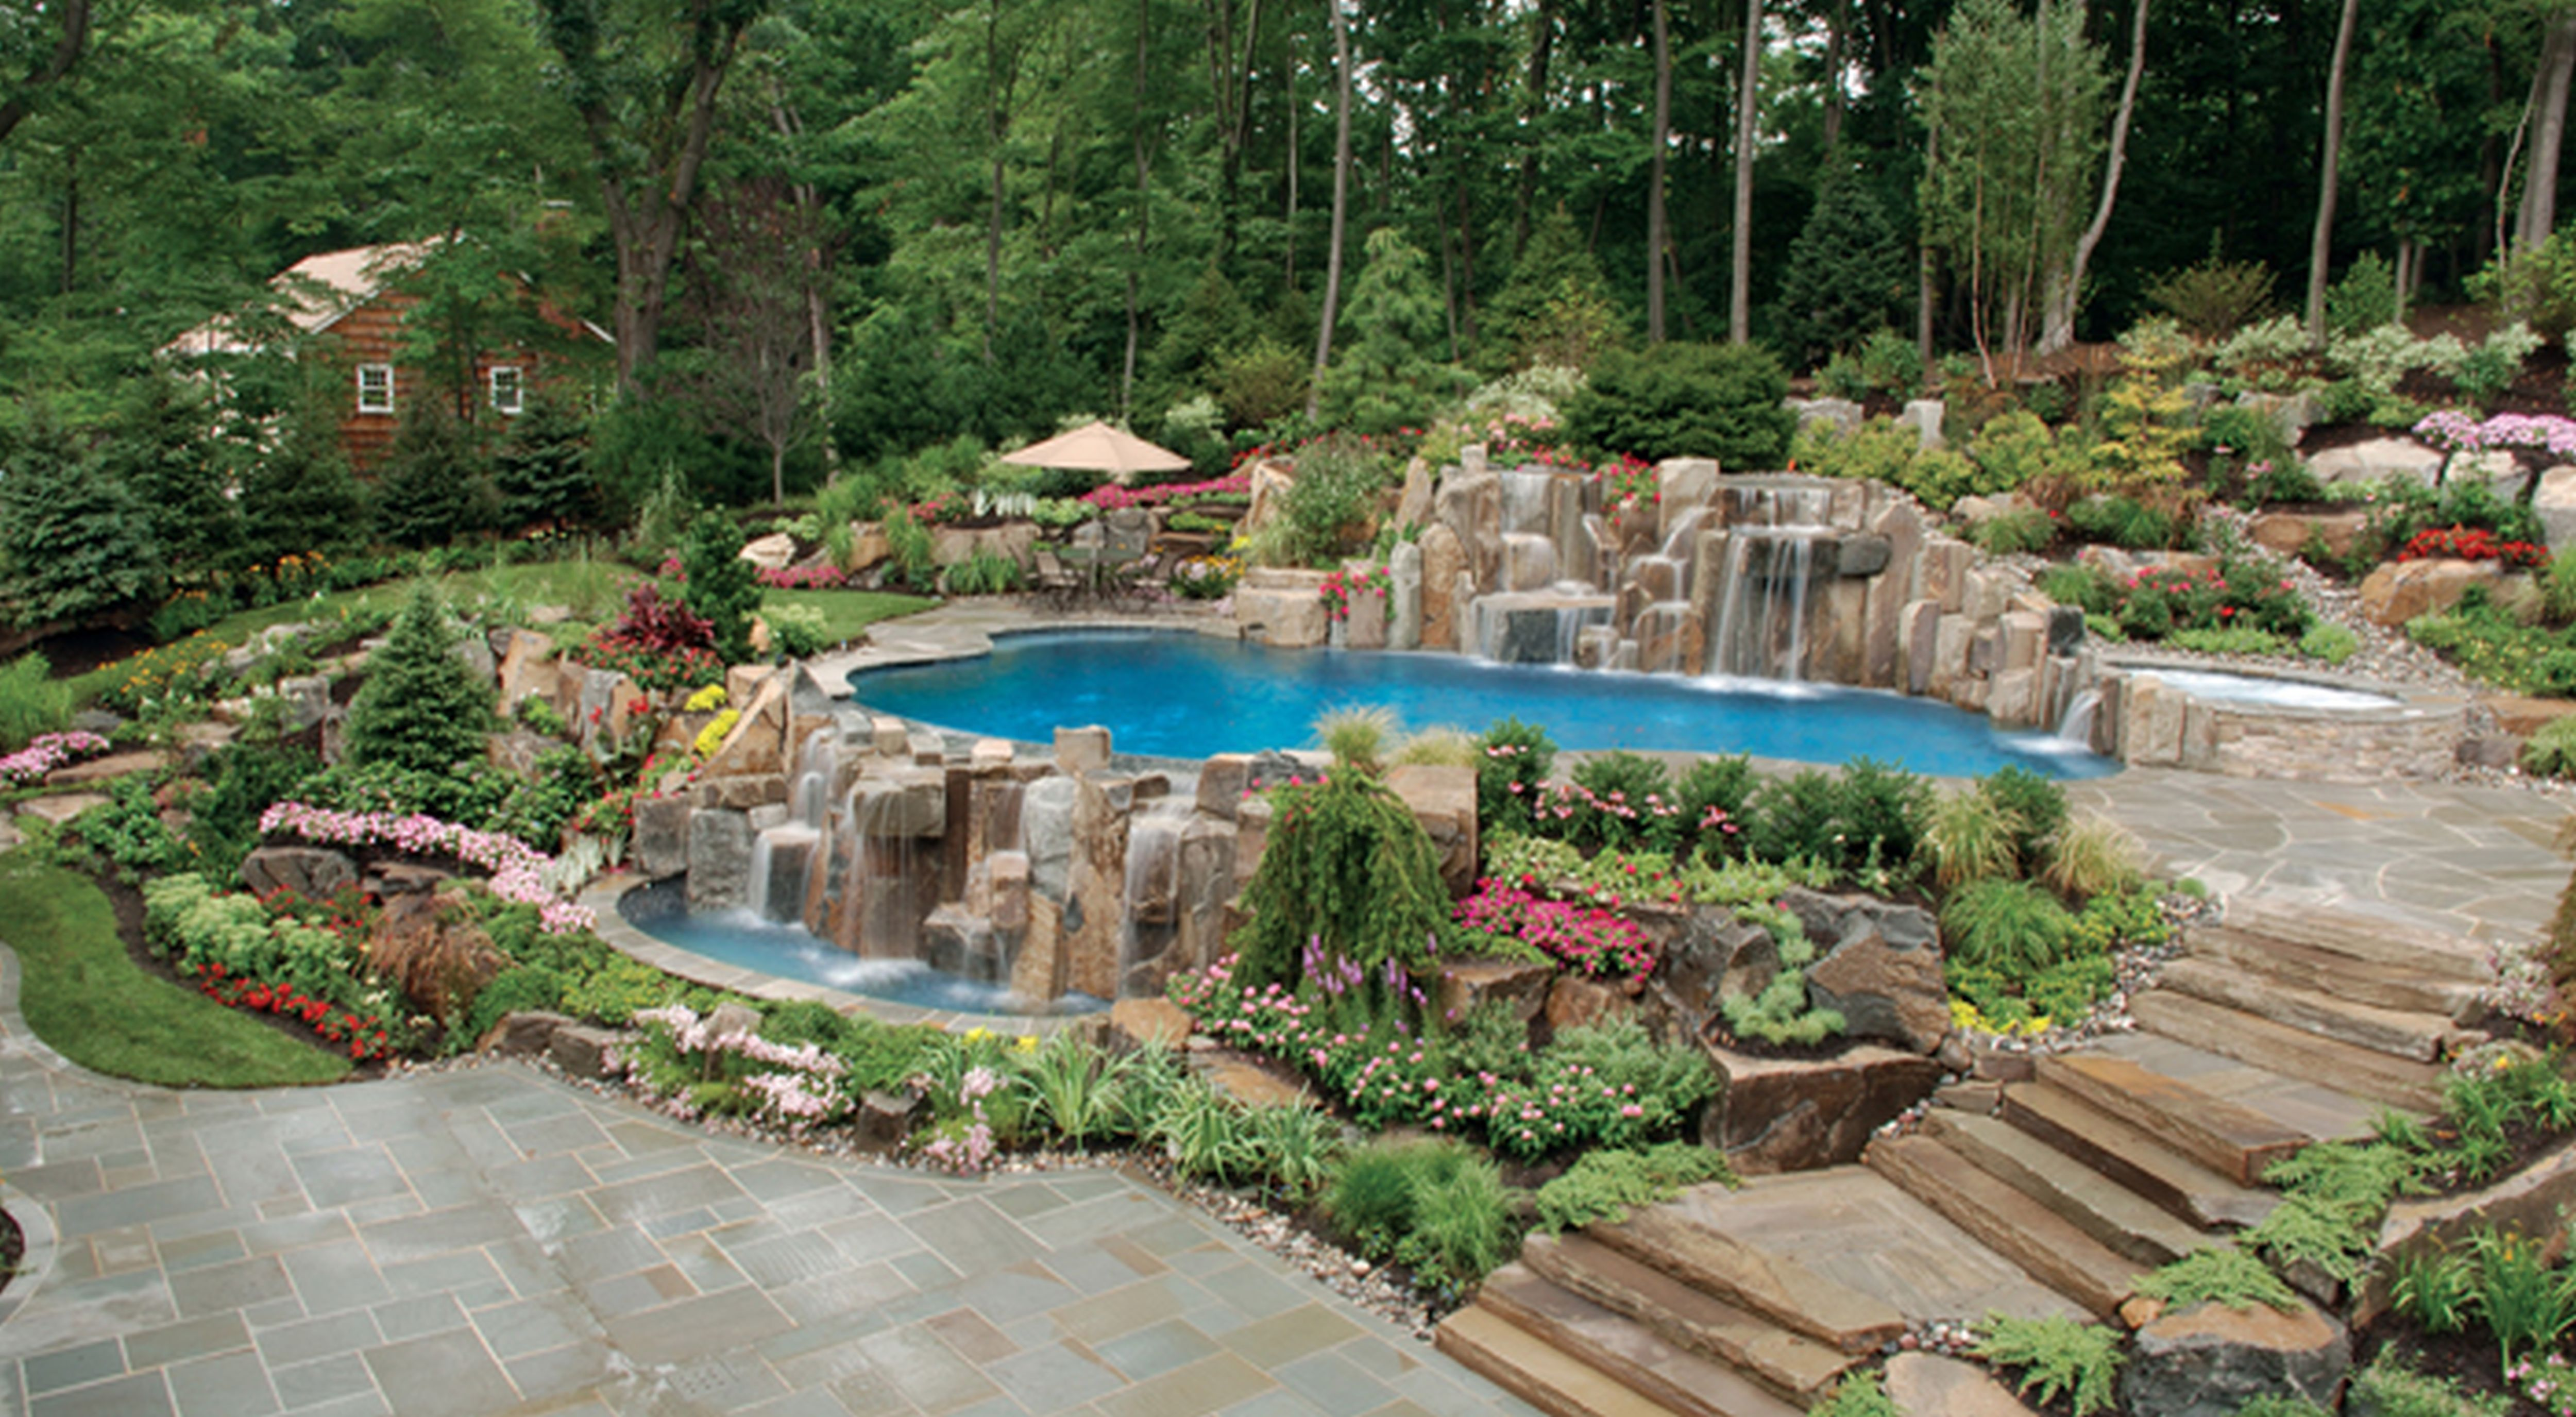 awesome amazing backyard natural infinity edge swimming pool and waterfall installation and landscaping design ideas saddle river nj enchanting backyard - Swimming Pool Landscape Designs